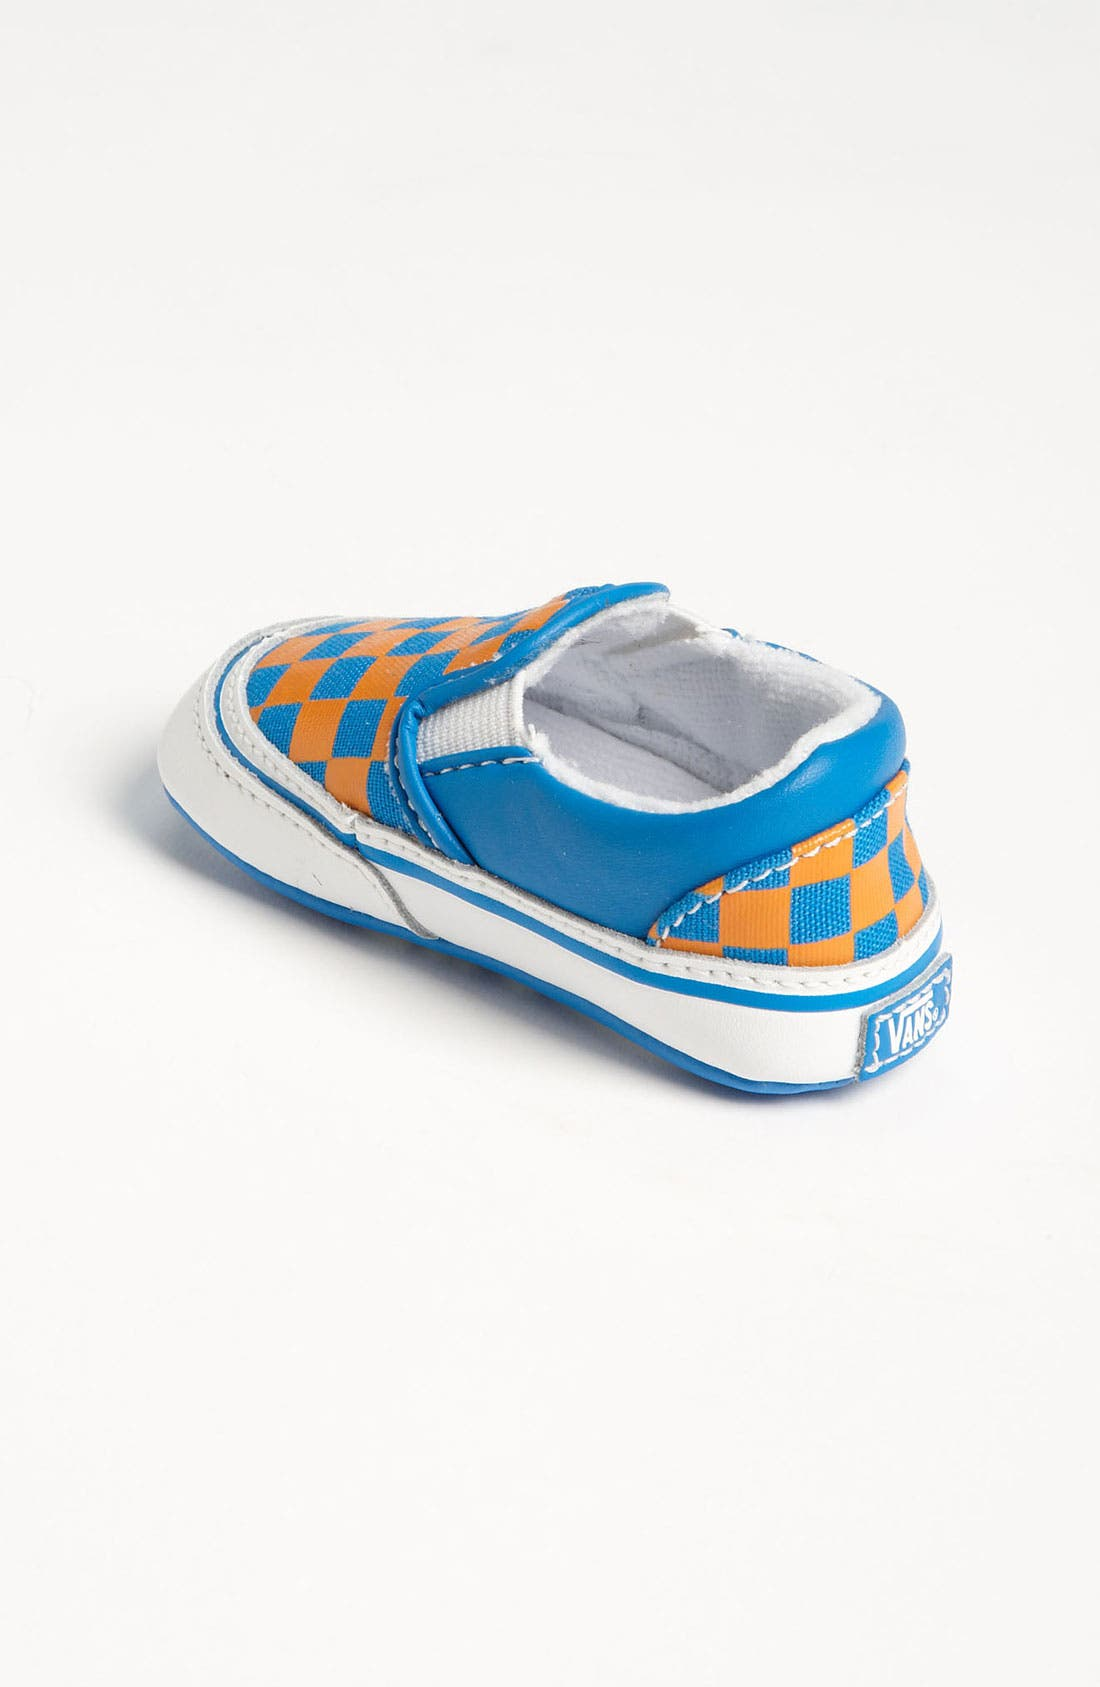 Alternate Image 2  - Vans 'Classic - Checker' Crib Shoe (Infant)